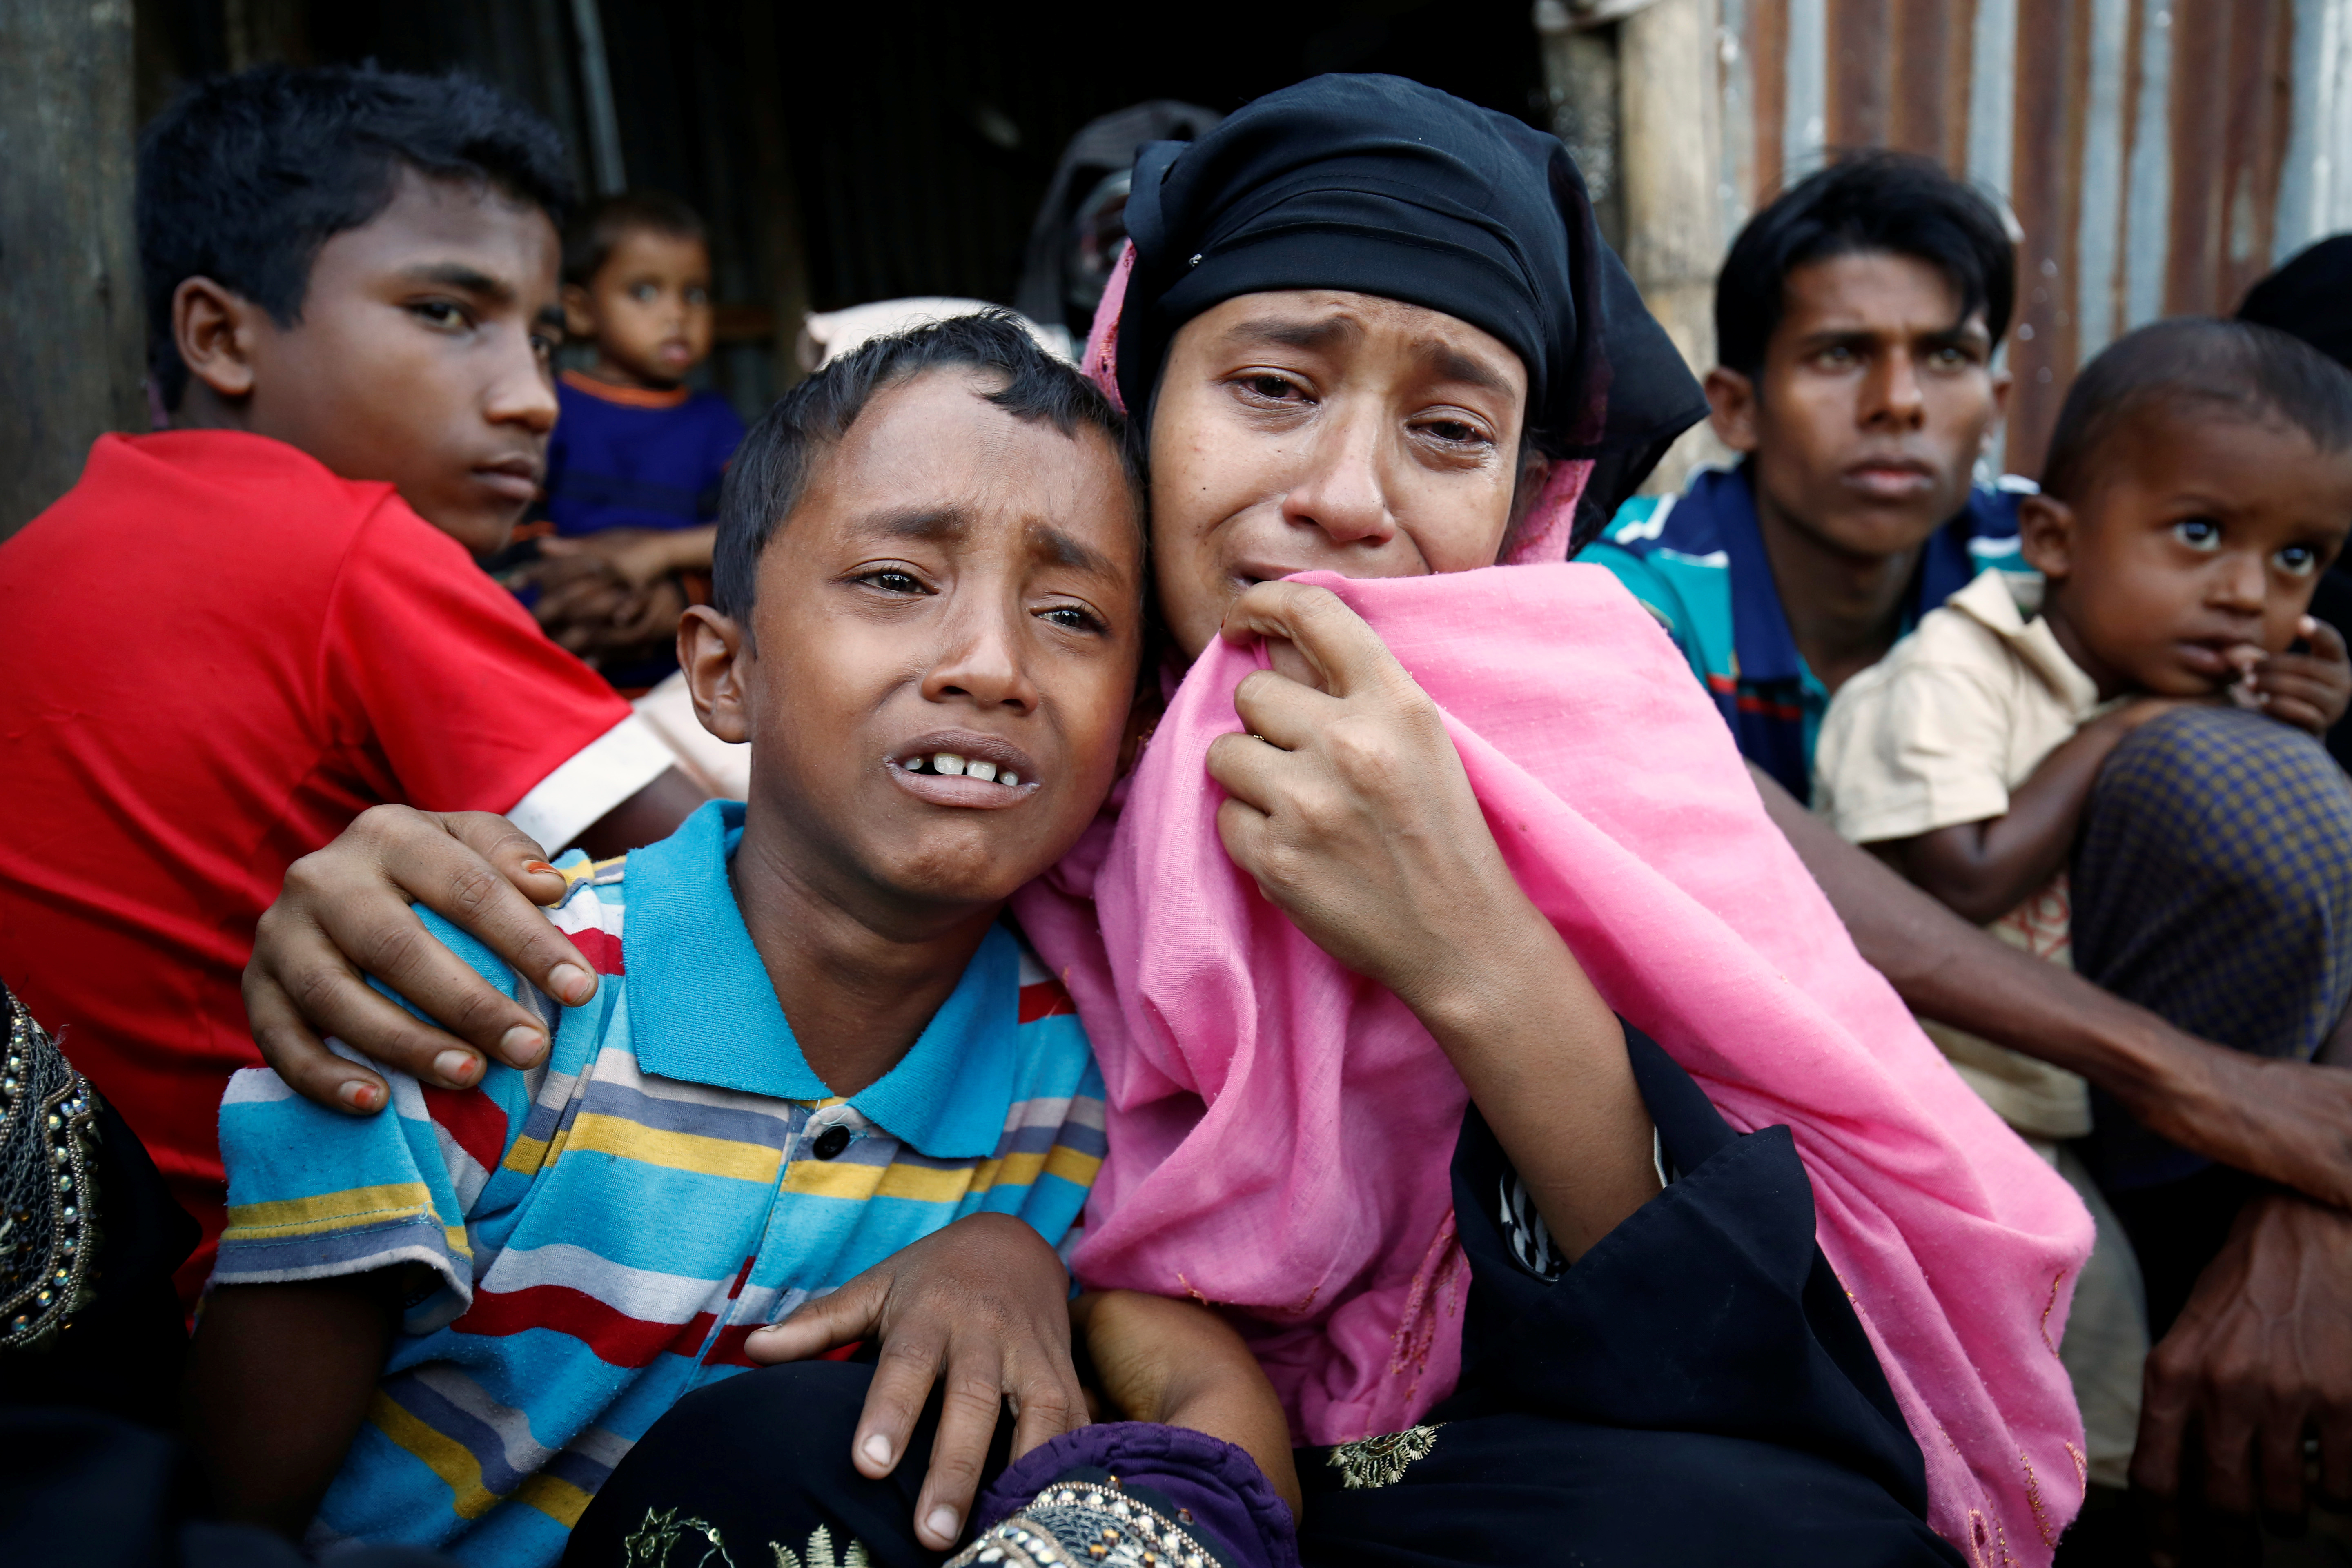 A Rohingya Muslim woman and her son cry after being caught by Border Guard Bangladesh (BGB) while illegally crossing at a border check point in Cox's Bazar, Bangladesh, on Nov. 21, 2016